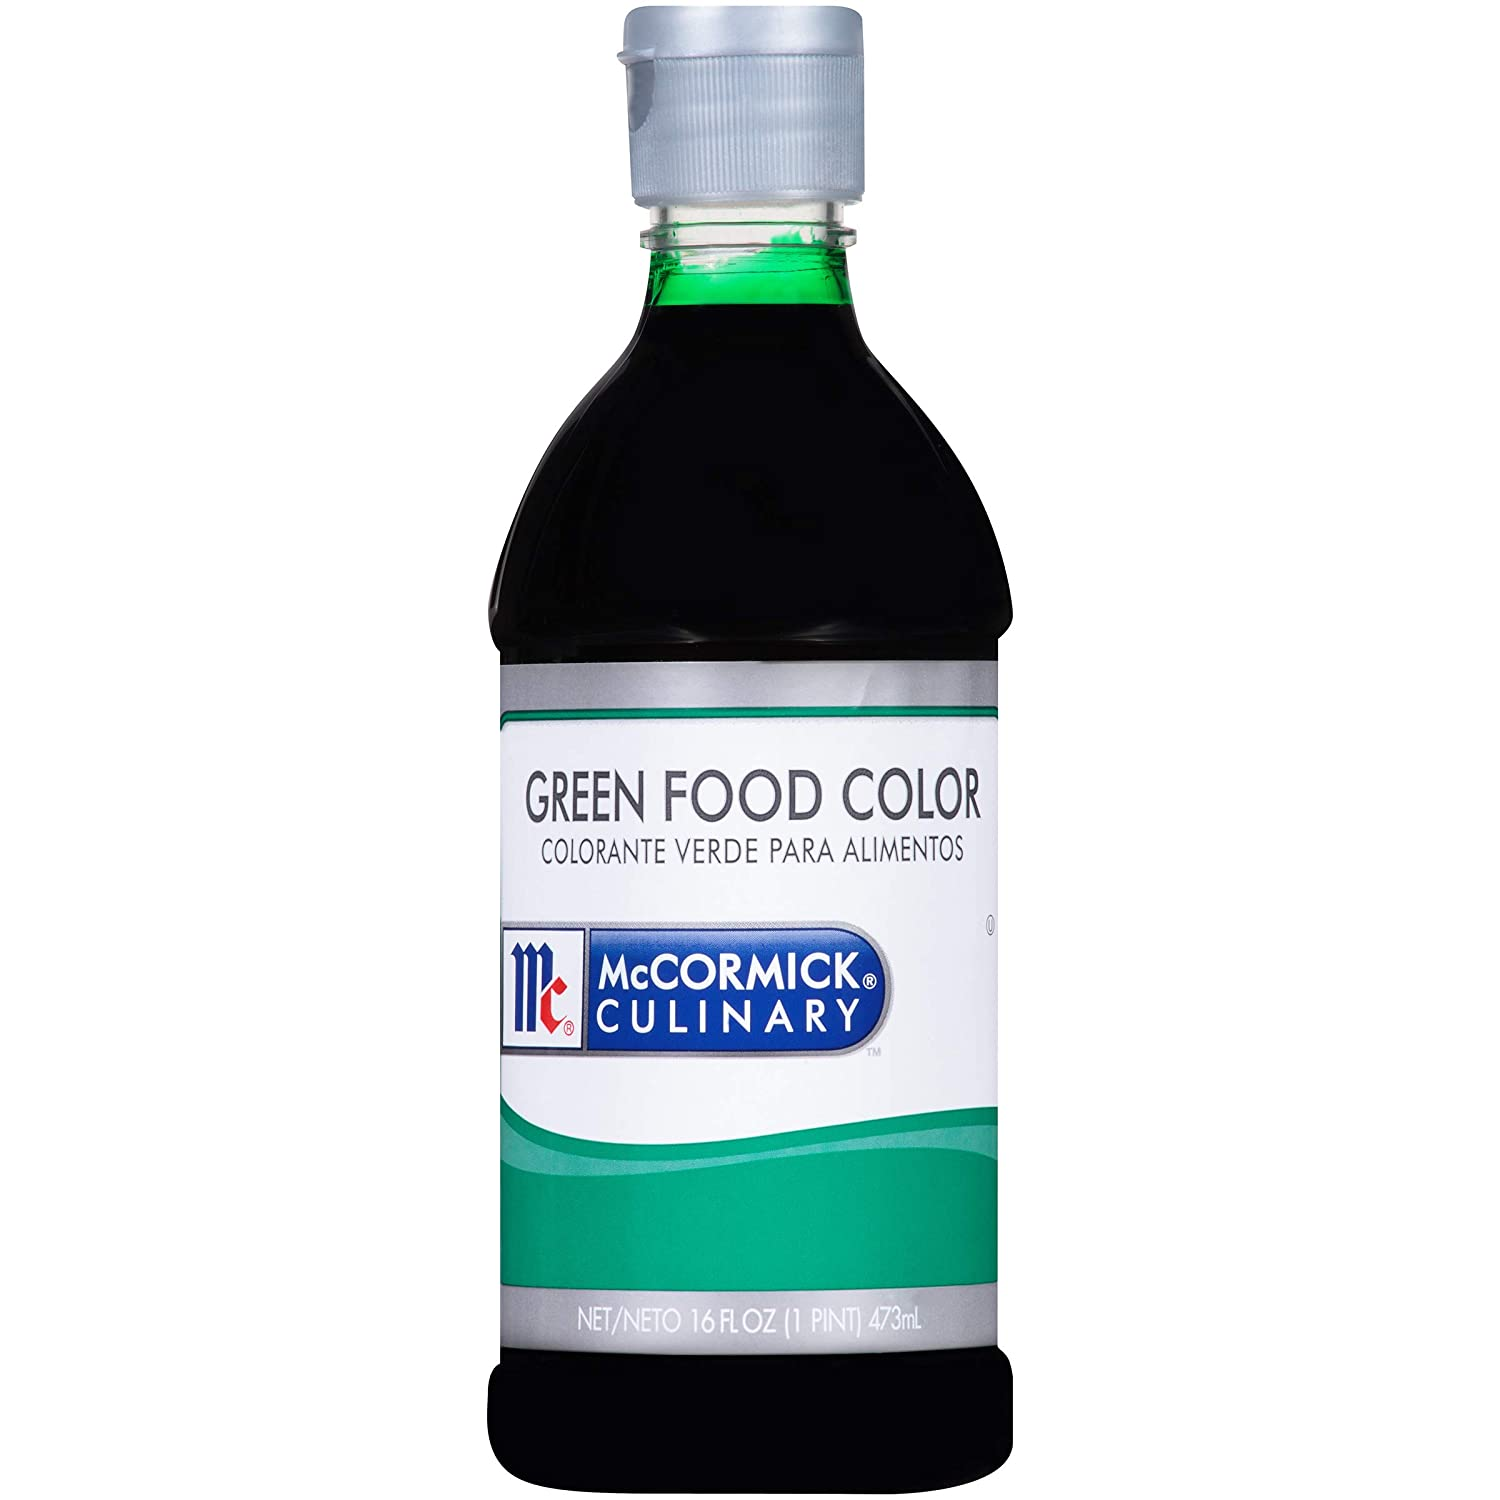 McCormick Culinary Green Food Color, 16 fl oz